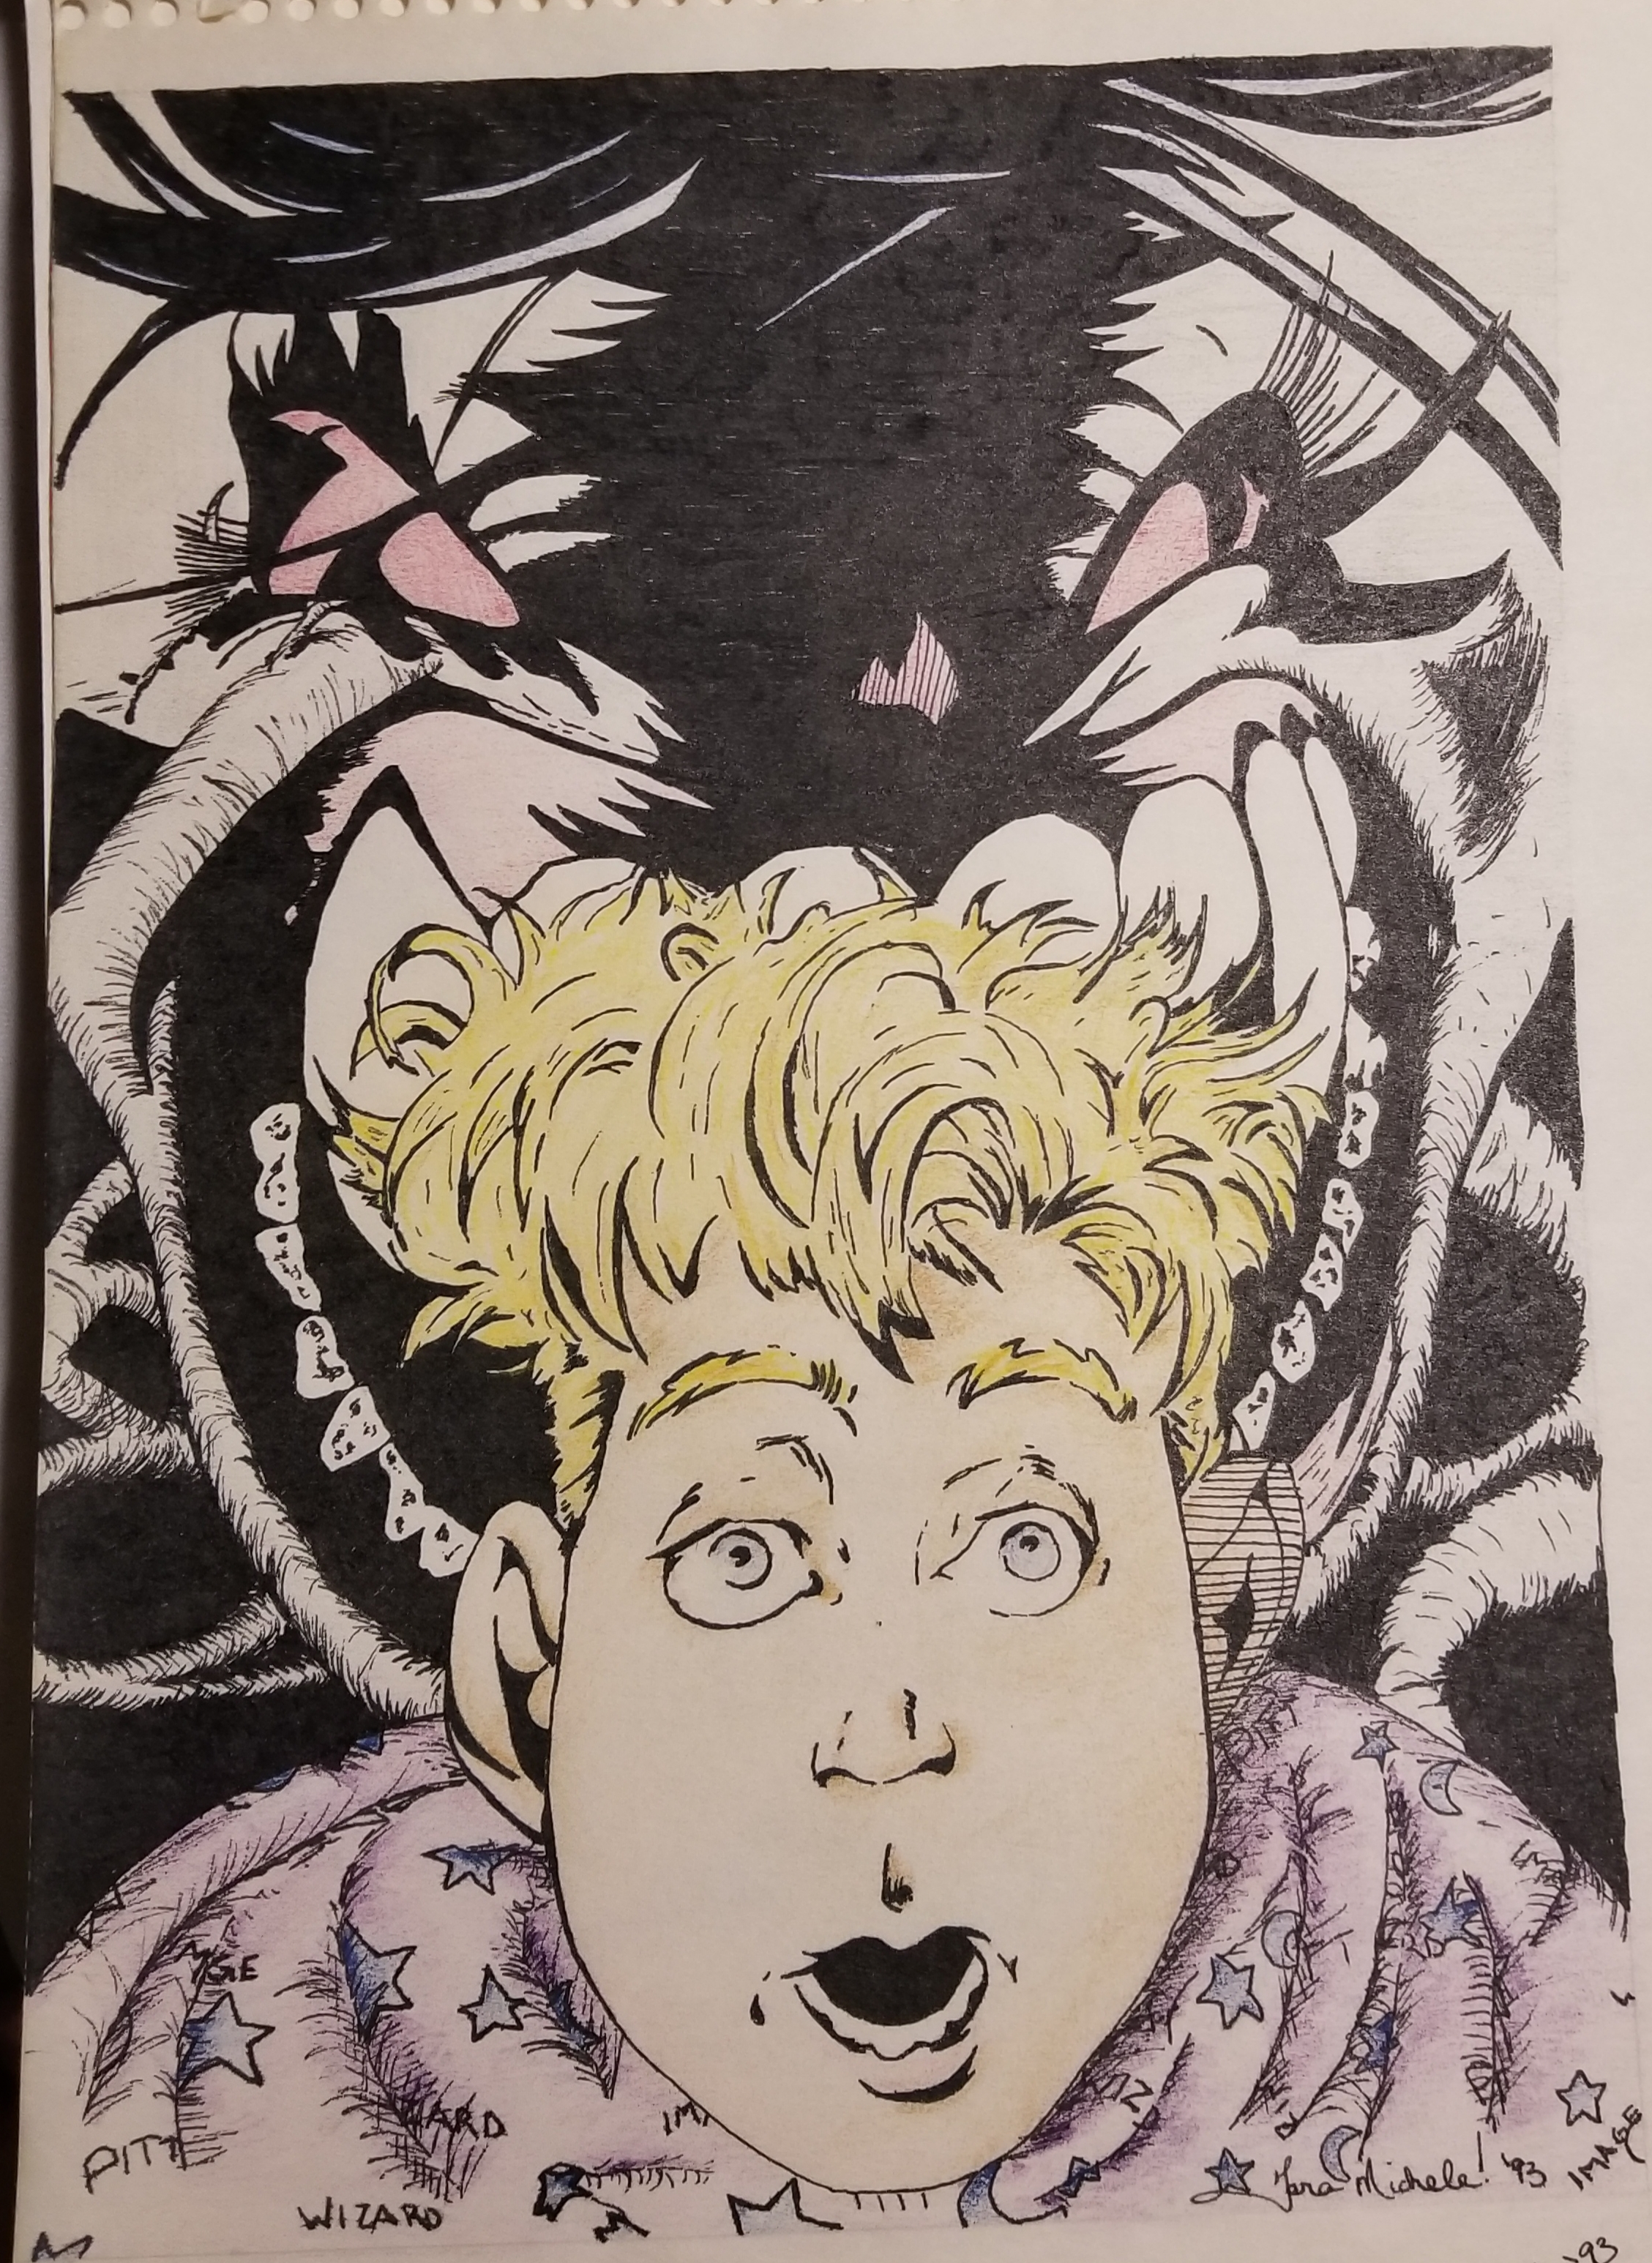 1993. Colored pencils and ink